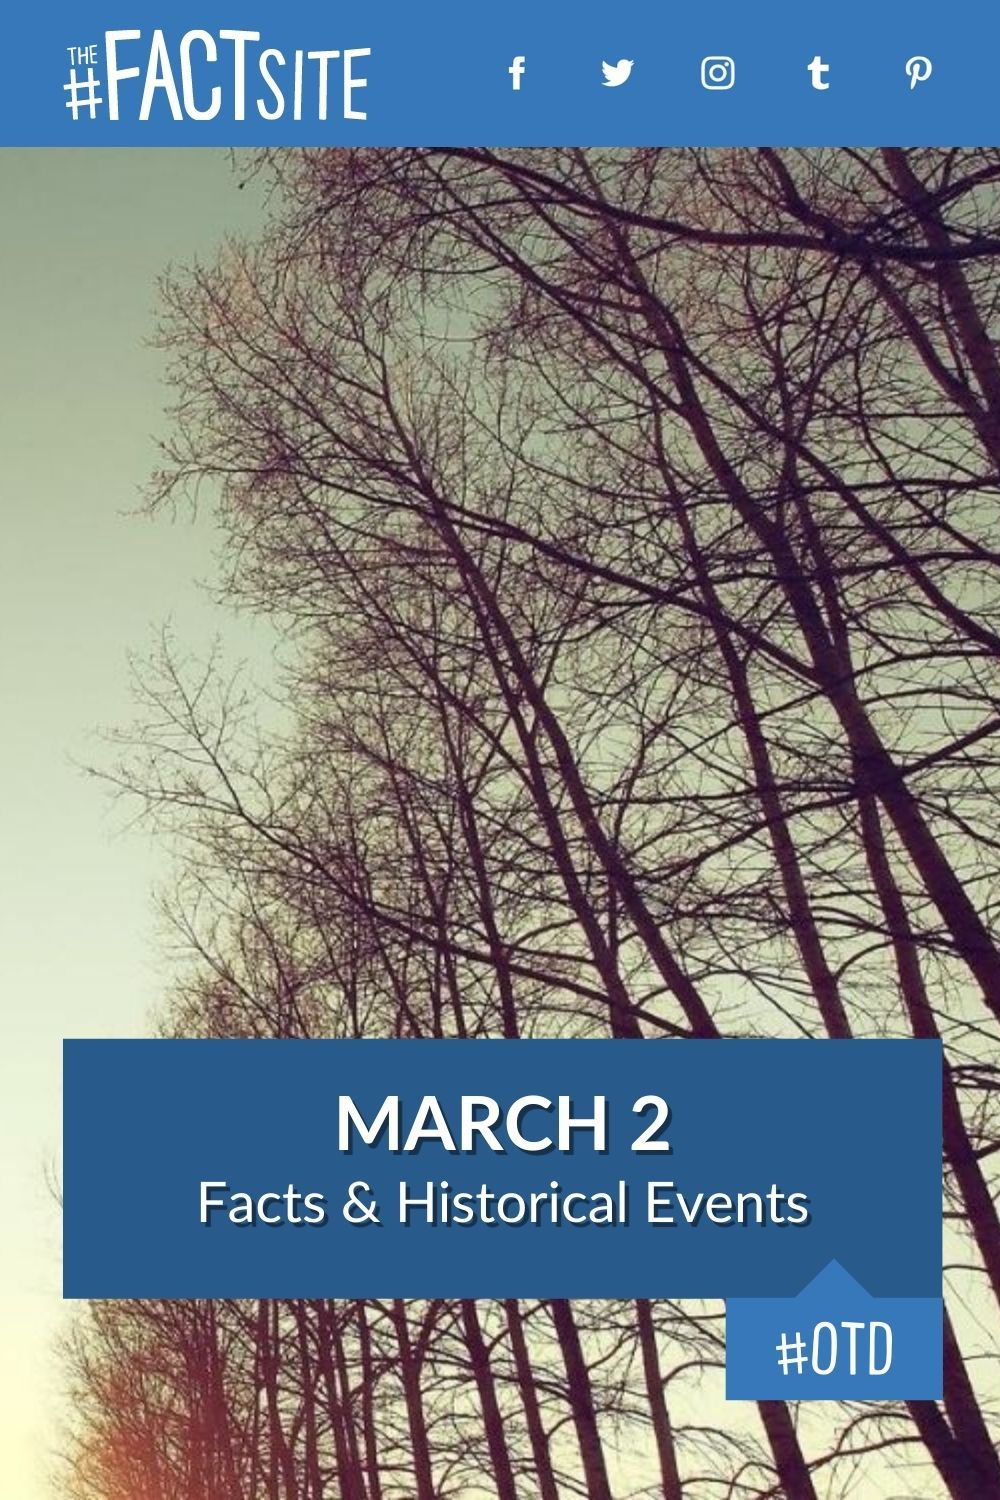 Facts & Historic Events That Happened on March 2